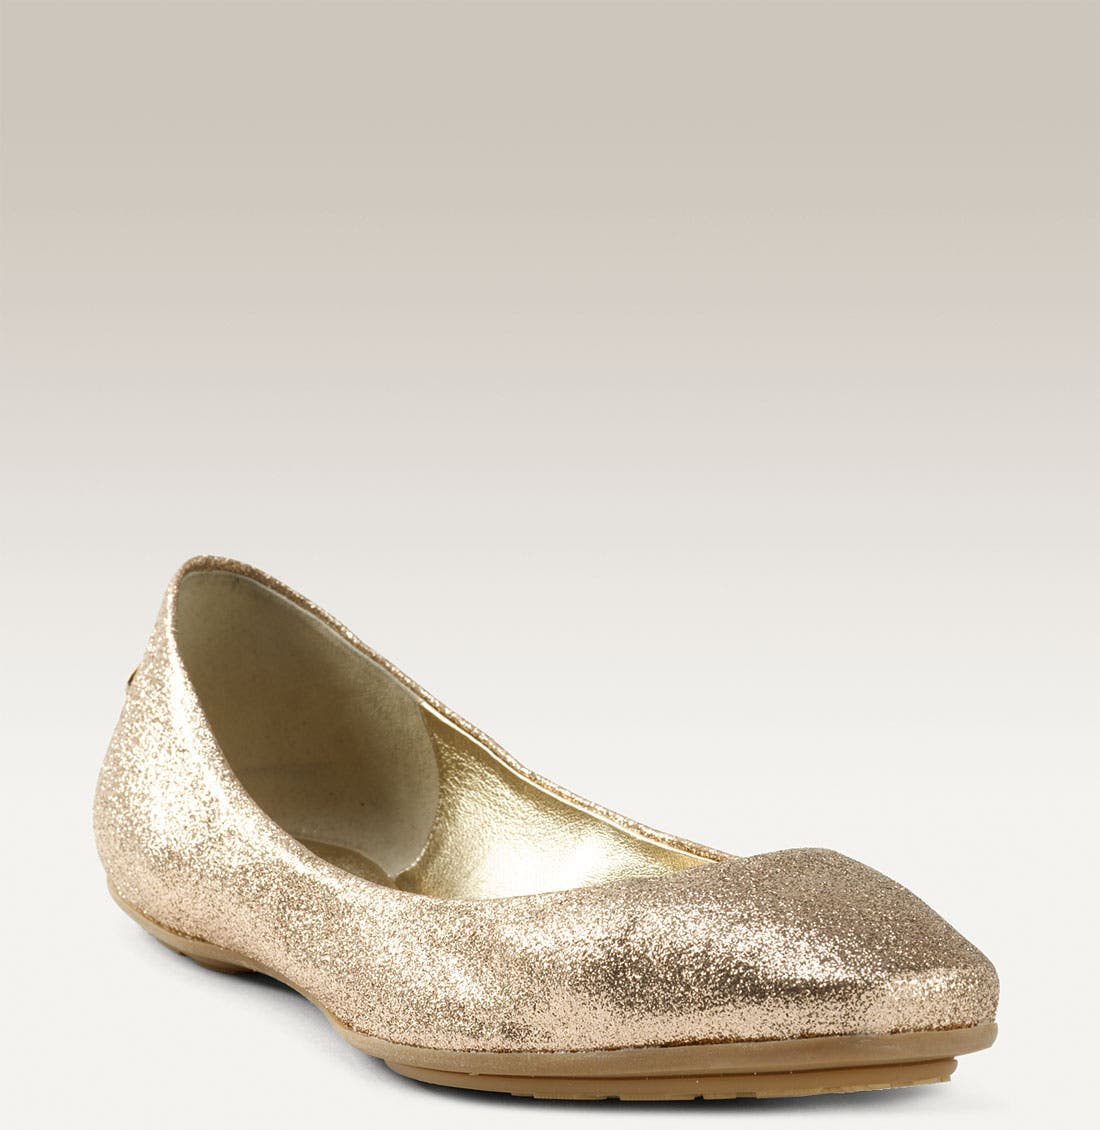 cheap shop for 100% authentic cheap price Jimmy Choo Witty Glitter Flats top quality 091oLCv2I